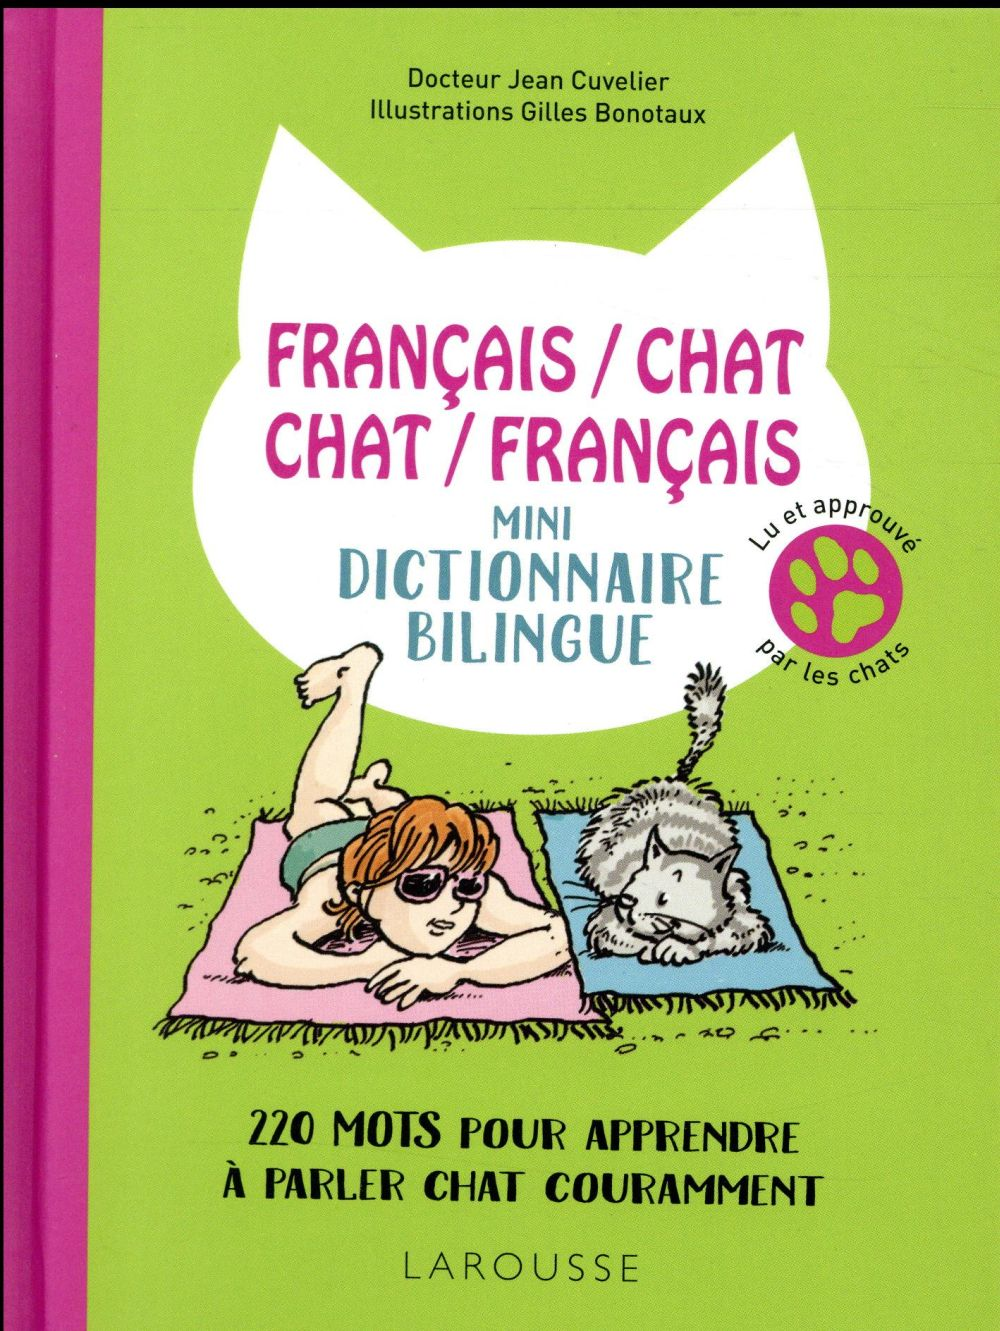 FRANCAIS/CHAT-CHAT/FRANCAIS-MINI-DICTIONNAIRE BILINGUE